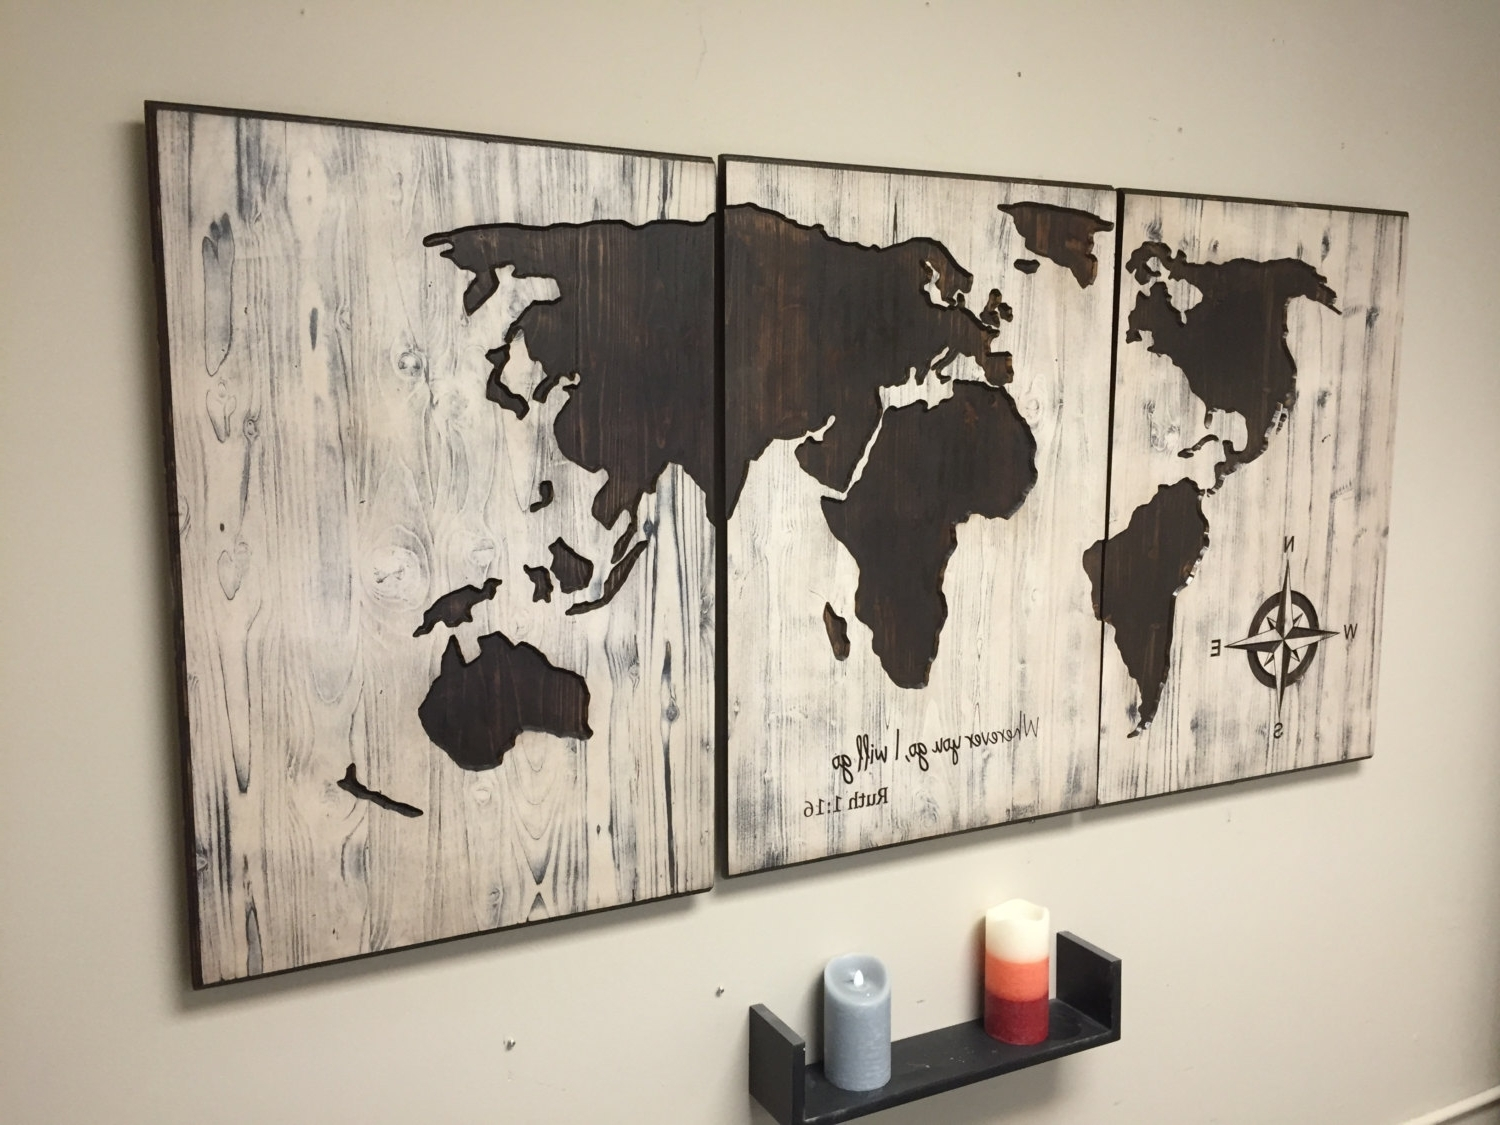 Preferred World Map Reclaimed Barn Door Wood String Art Wall Decor 39 X 29 And For String Map Wall Art (View 9 of 15)